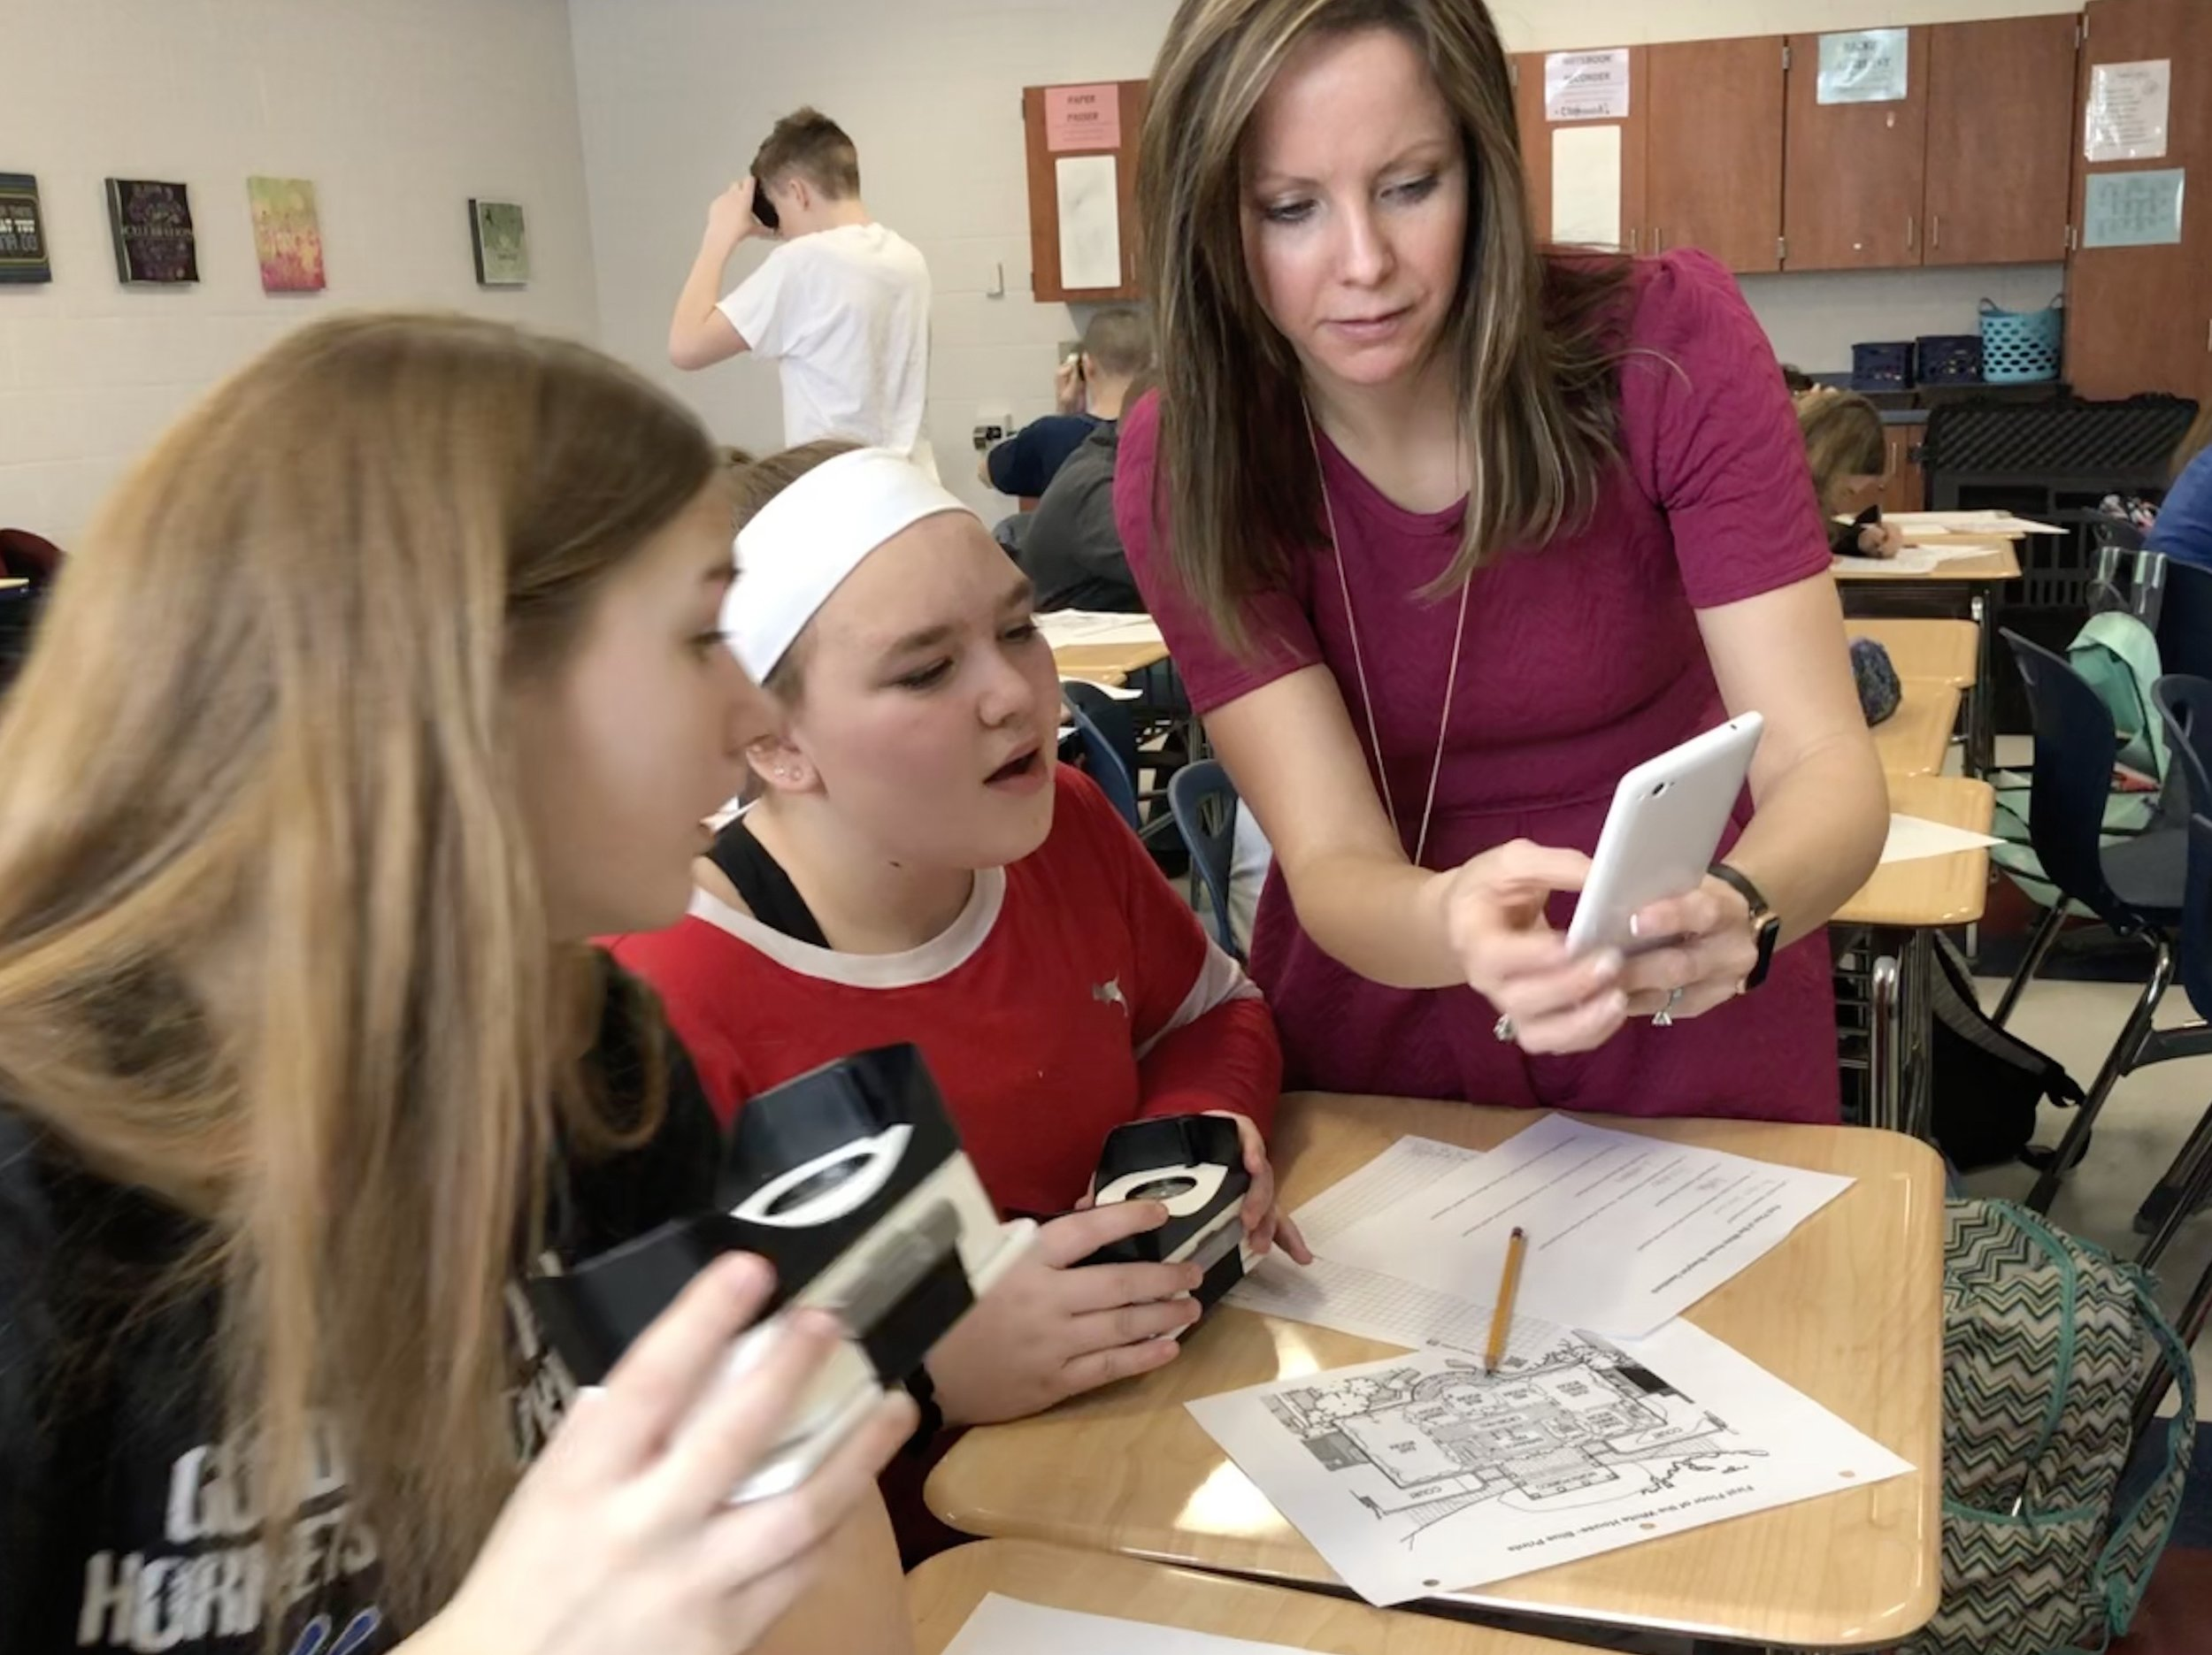 Teacher working with students using VR viewfinders as part of a project.